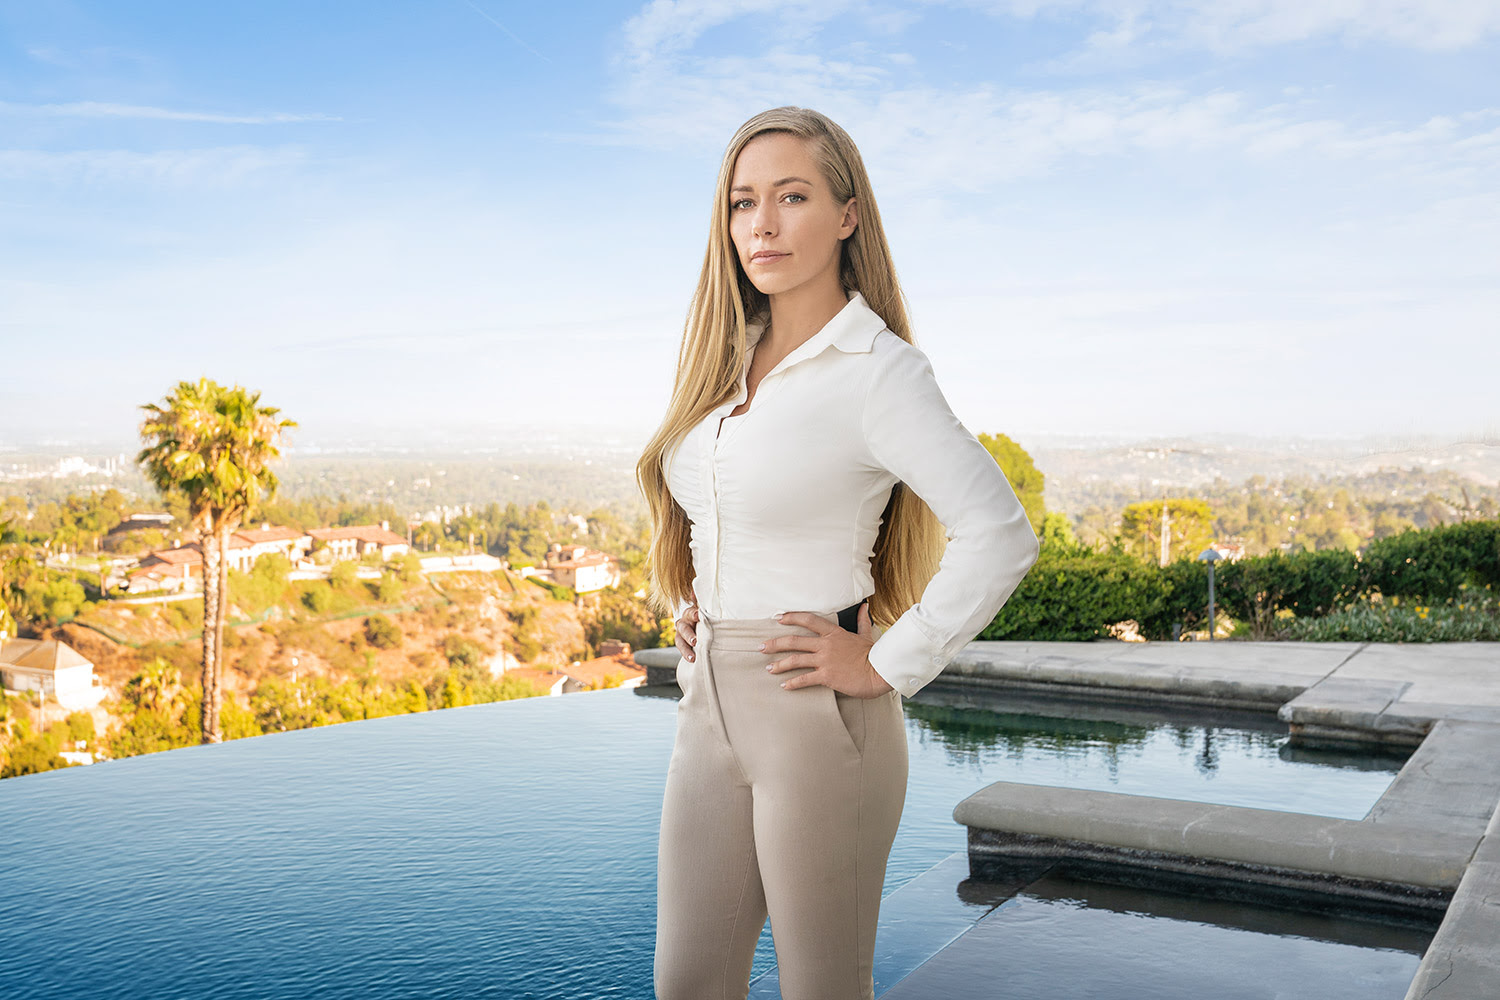 WATCH: Kendra Wilkinson's Real Estate Reality Show Premieres Next Month | PEOPLE.com